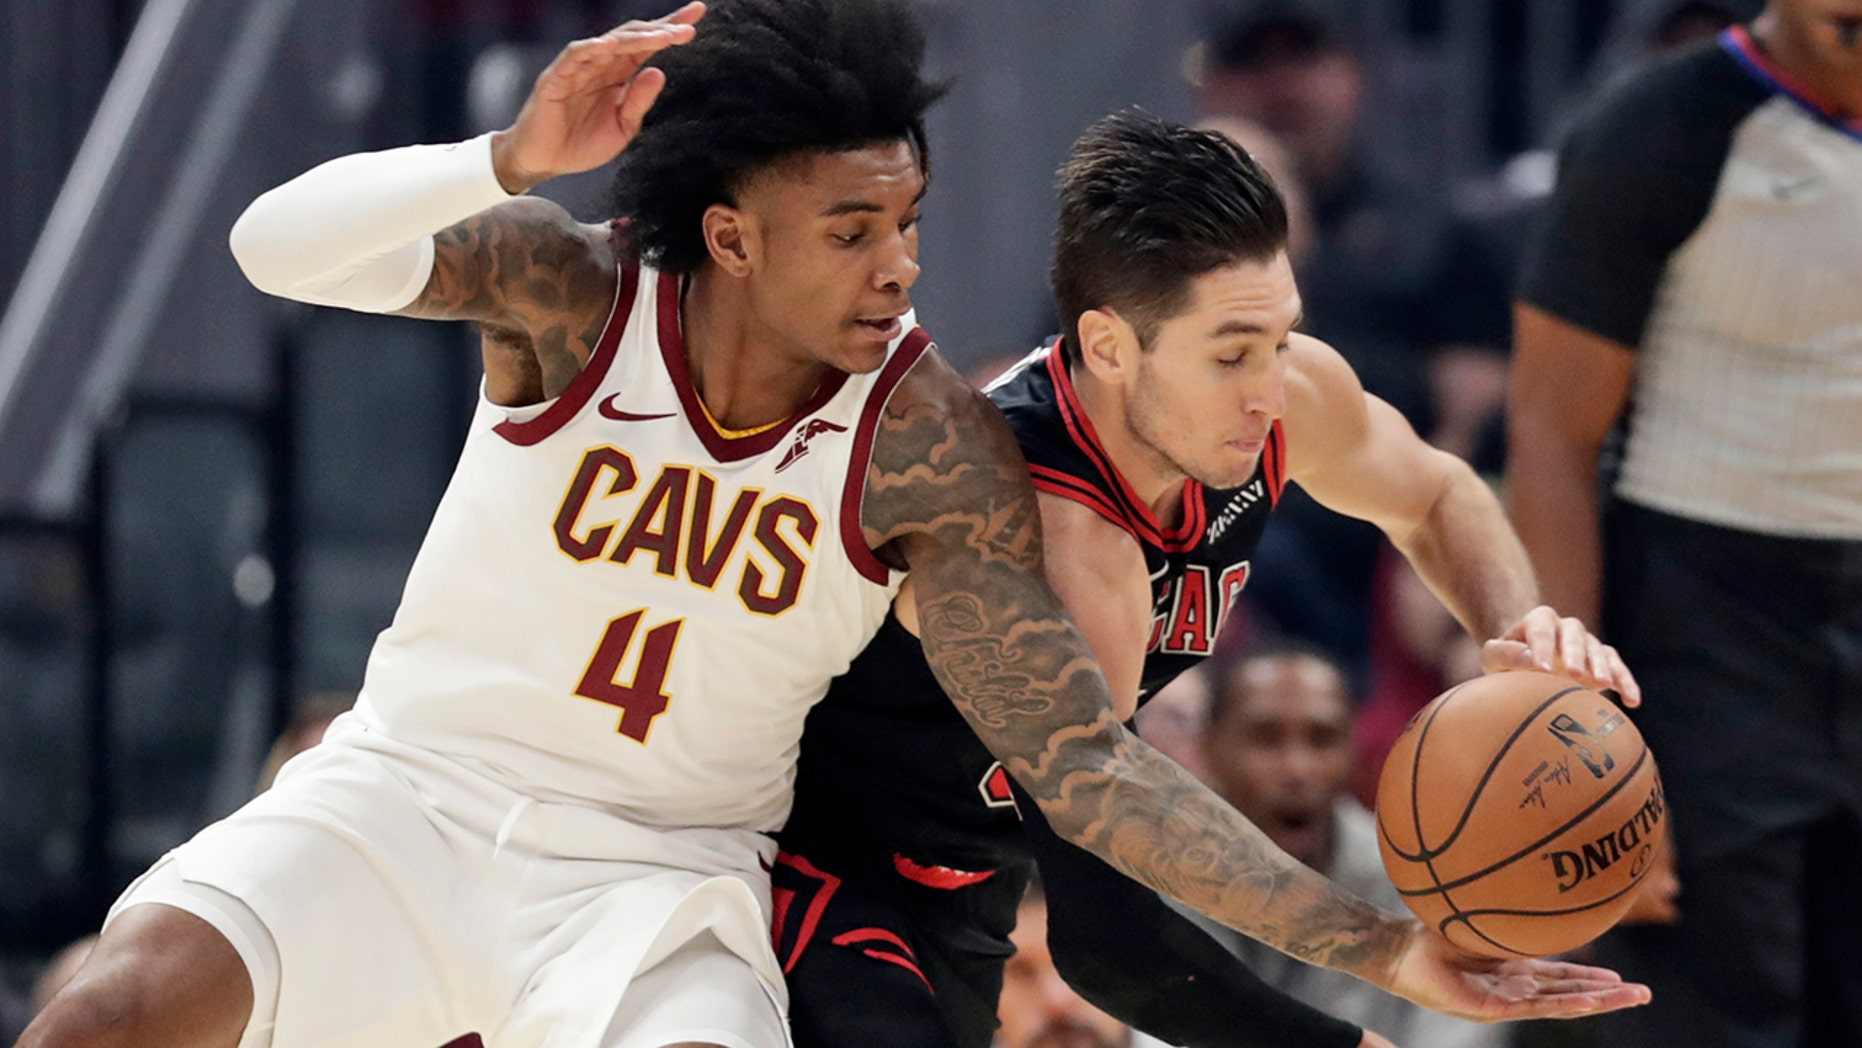 Cavs rookie Kevin Porter Jr. suspended for improper contact with official